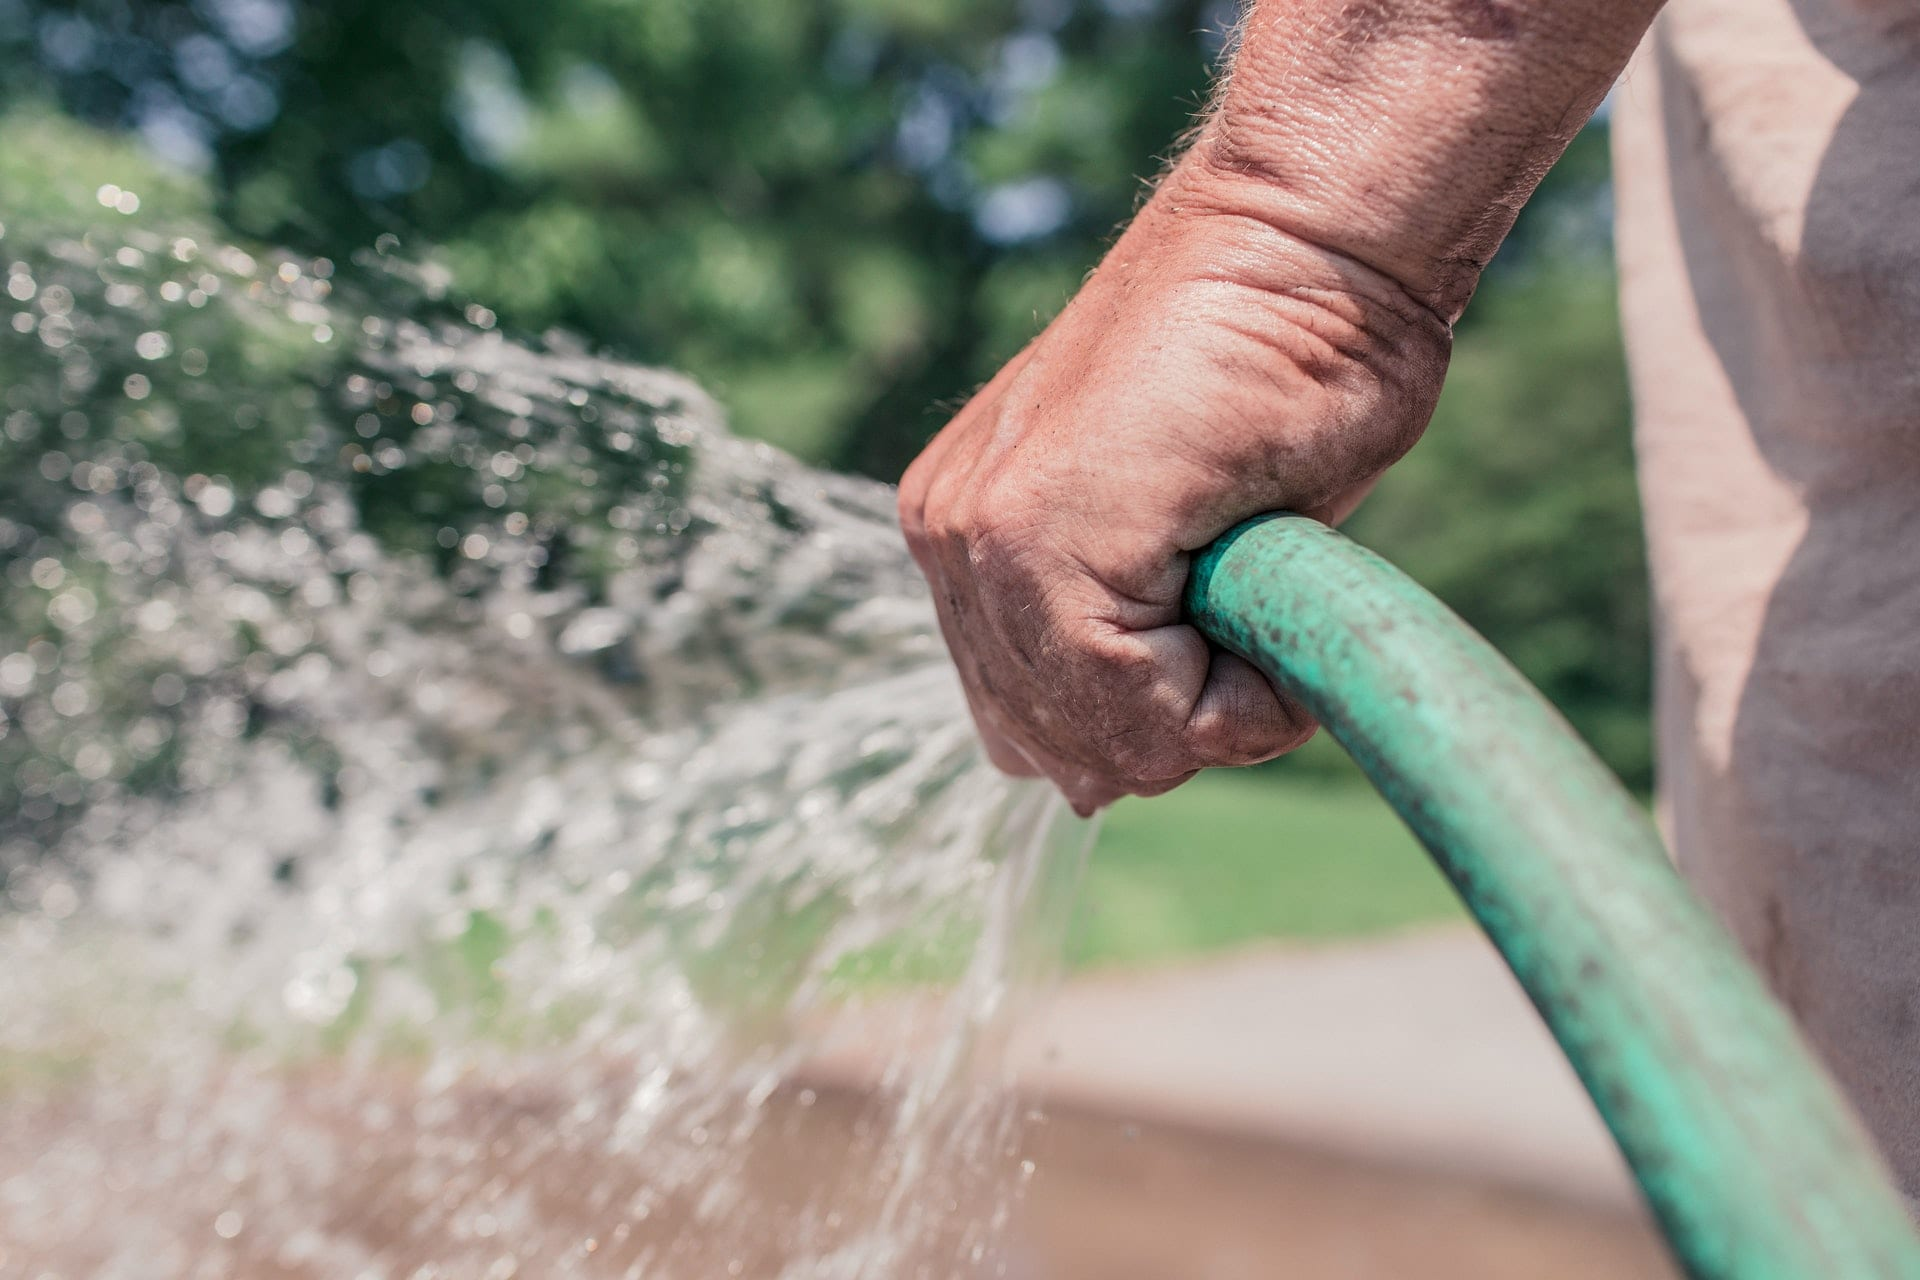 man's-hand-holding-green-hose-with-water-coming-out-of-it